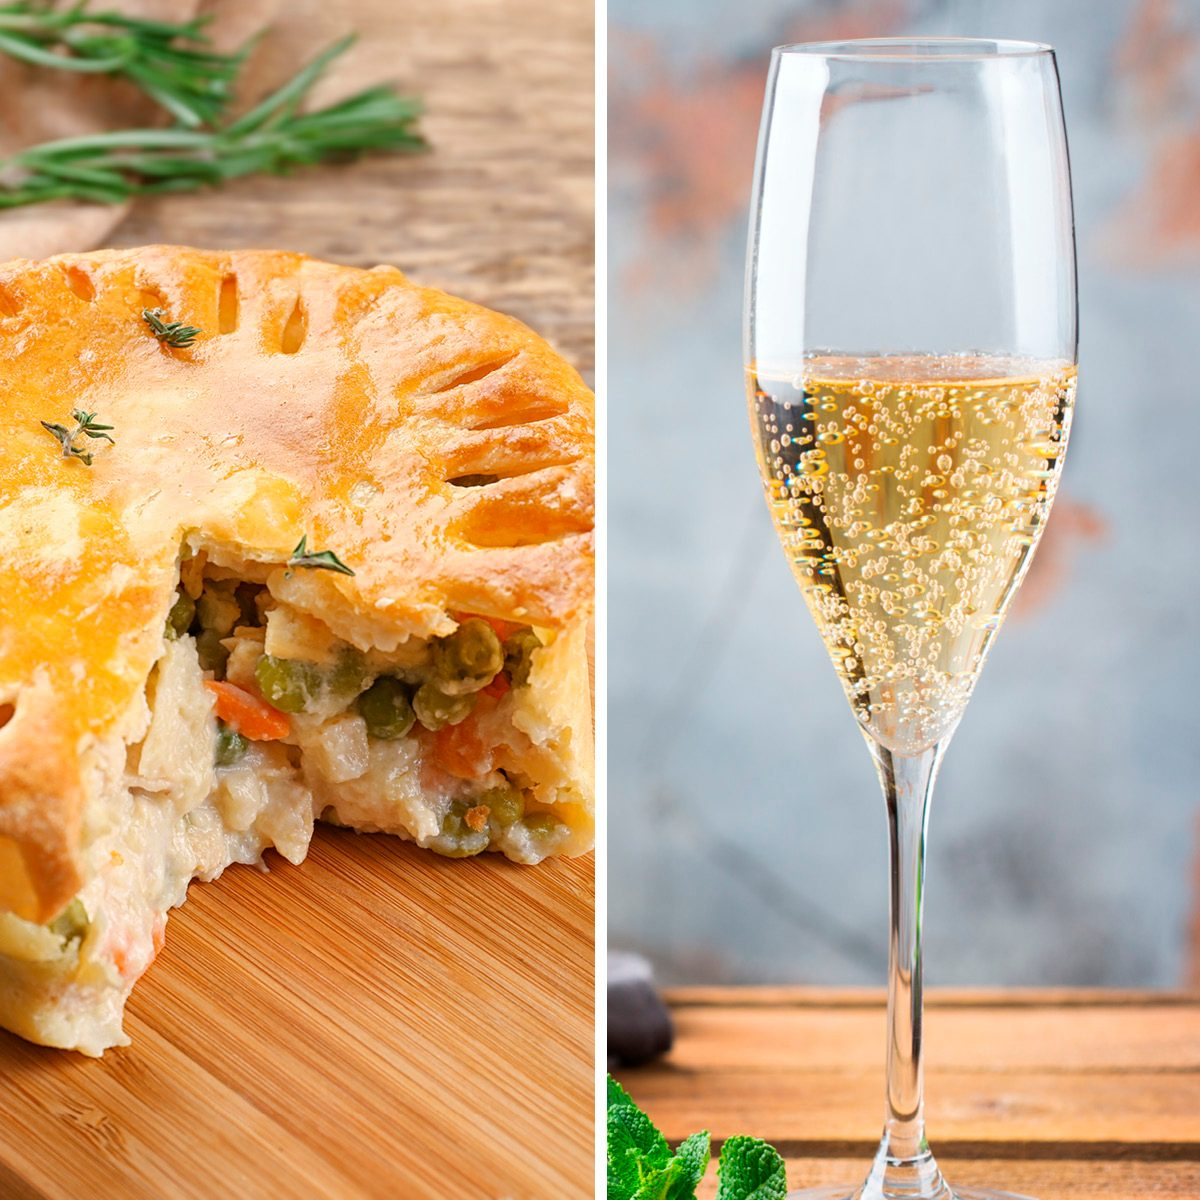 Food and drink, holidays party concept. Cold fresh alcohol beverage champagne sparkling white wine with bubbles in a flute glass on a wooden table. Copy space background; Shutterstock ID 1086809027; Job (TFH, TOH, RD, BNB, CWM, CM): TOH Tasty baked chicken pot pie on wooden board; Shutterstock ID 626255177; Job (TFH, TOH, RD, BNB, CWM, CM): TOH